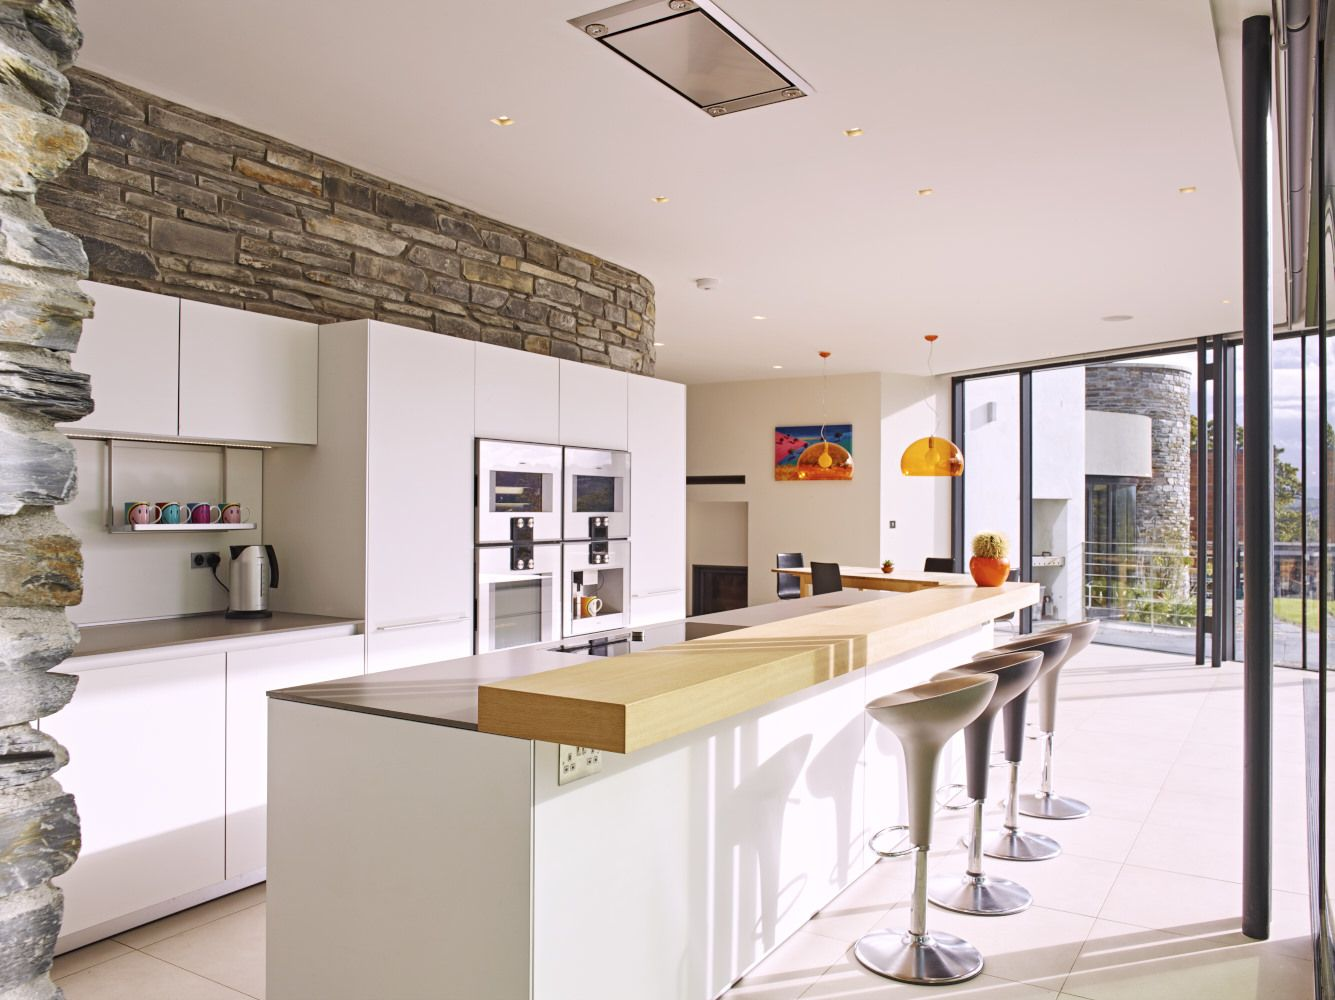 bulthaup b3 white kitchen with oak breakfast bar designed by sapphire spaces exeter kitchen. Black Bedroom Furniture Sets. Home Design Ideas